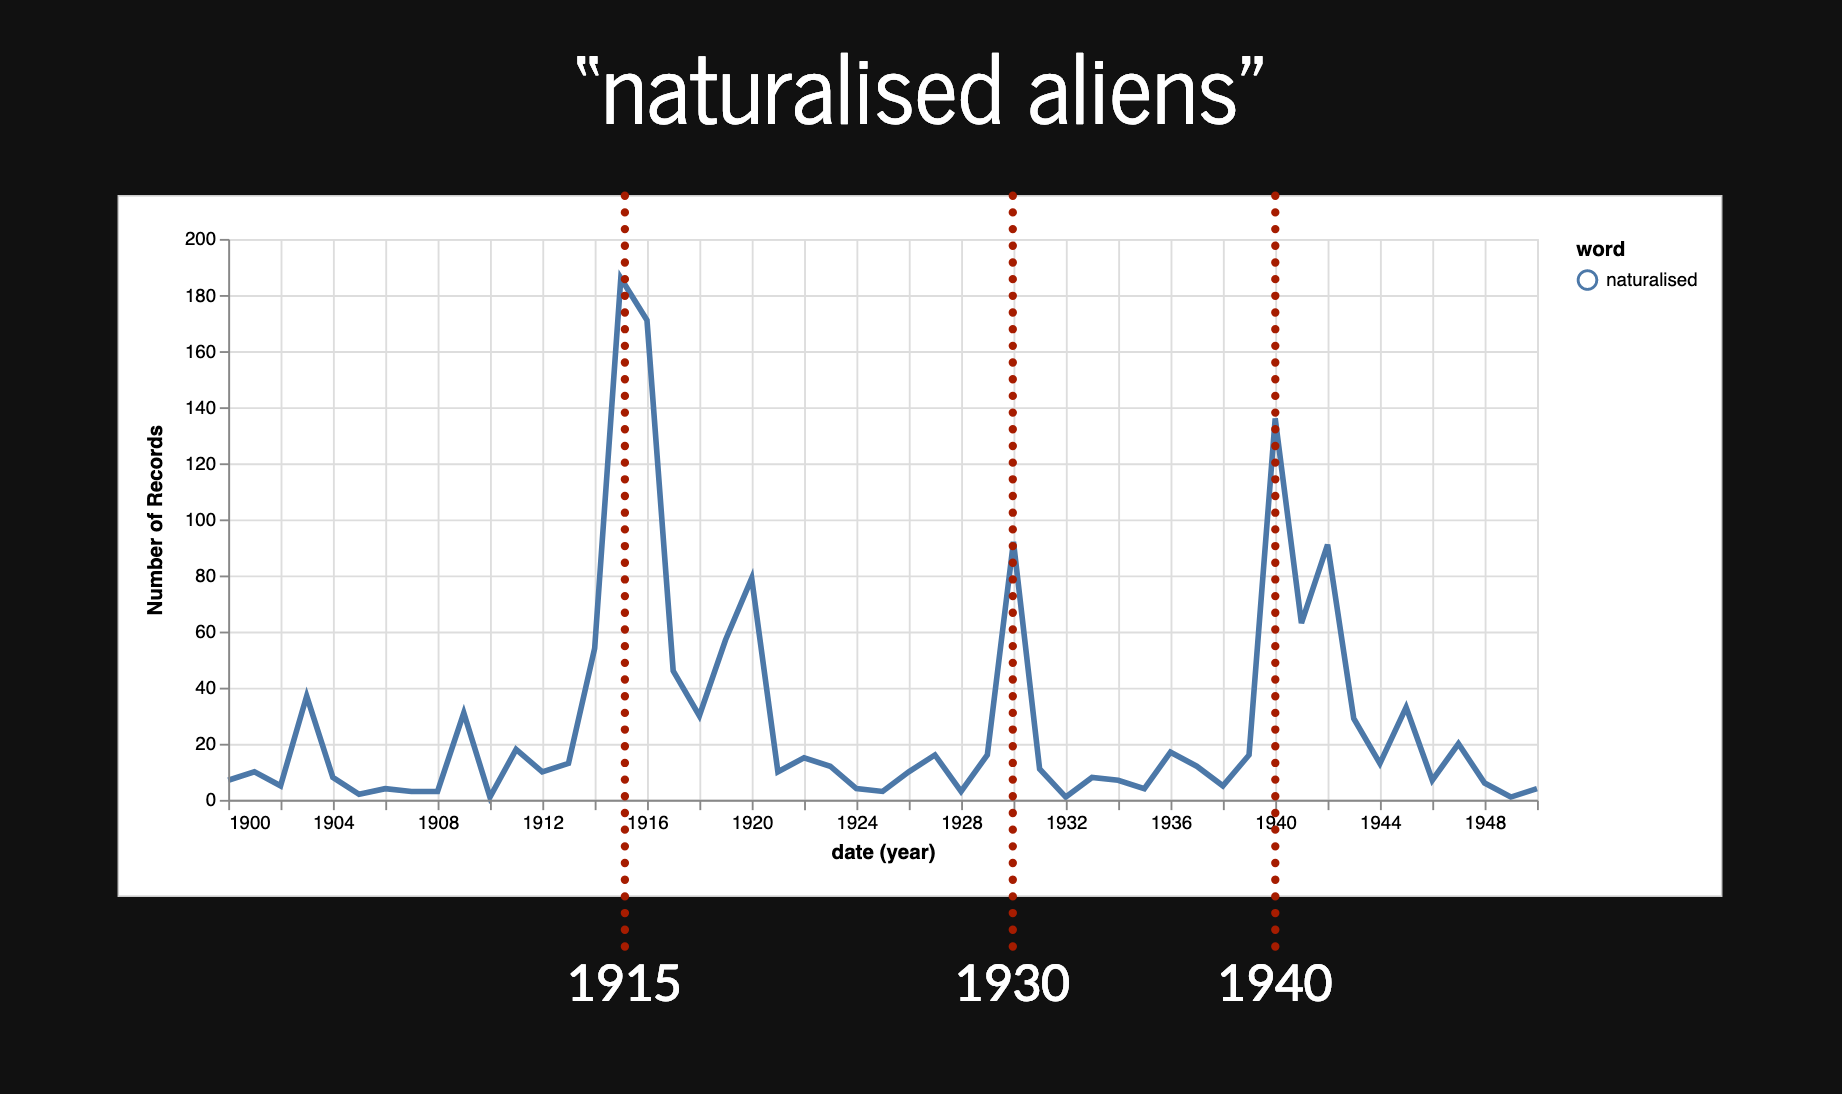 Frequency of naturalised aliens over time